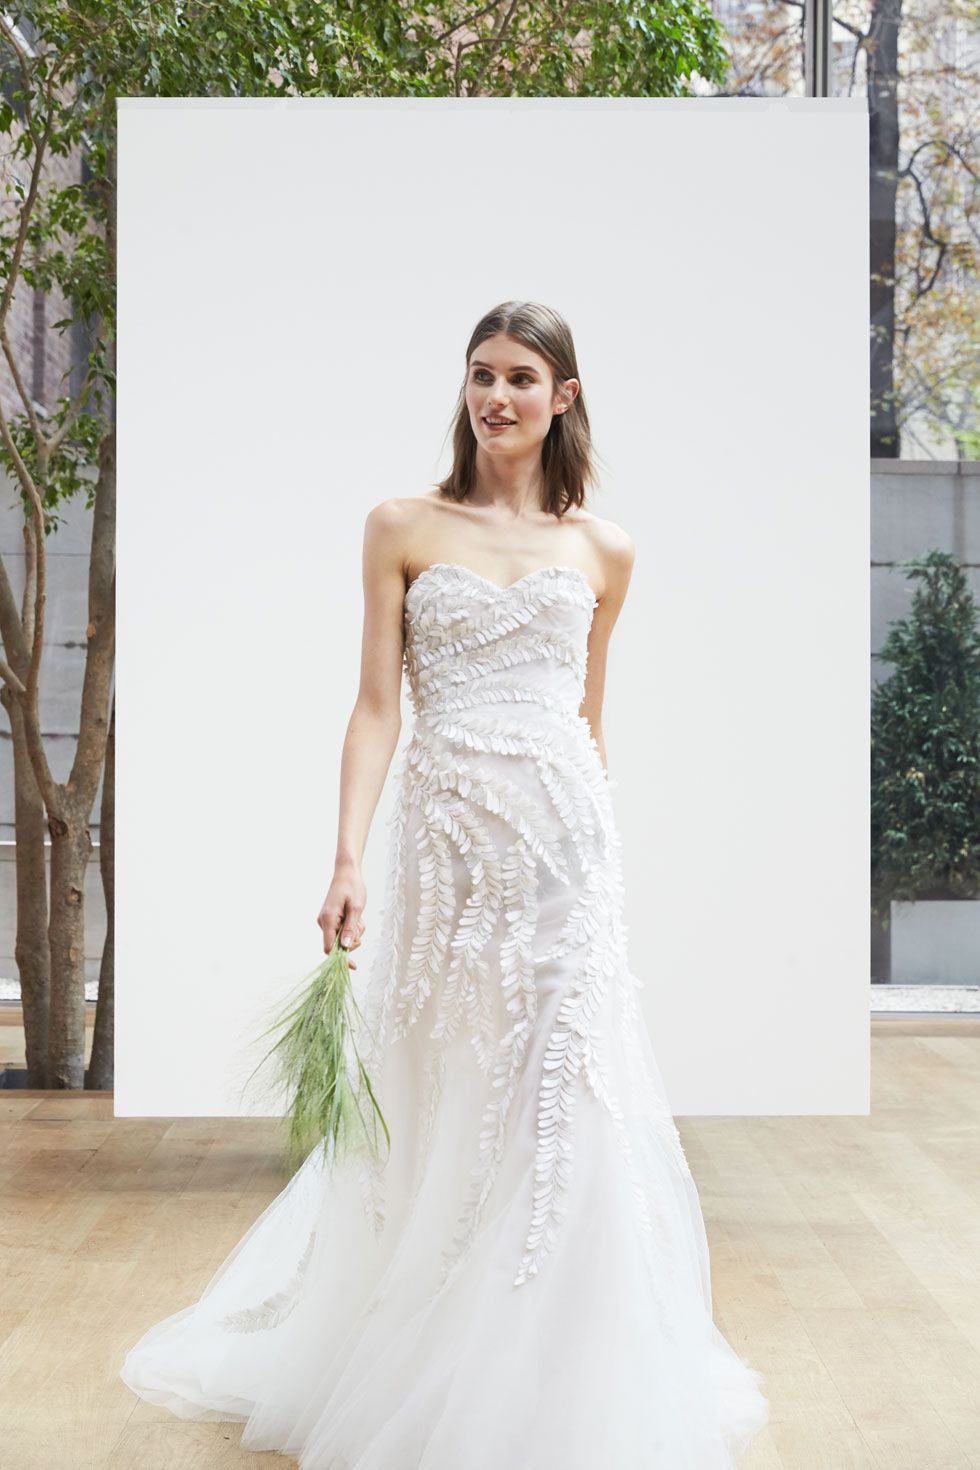 99 Beautiful Beach Wedding Dresses Bridal Gowns For A Destination